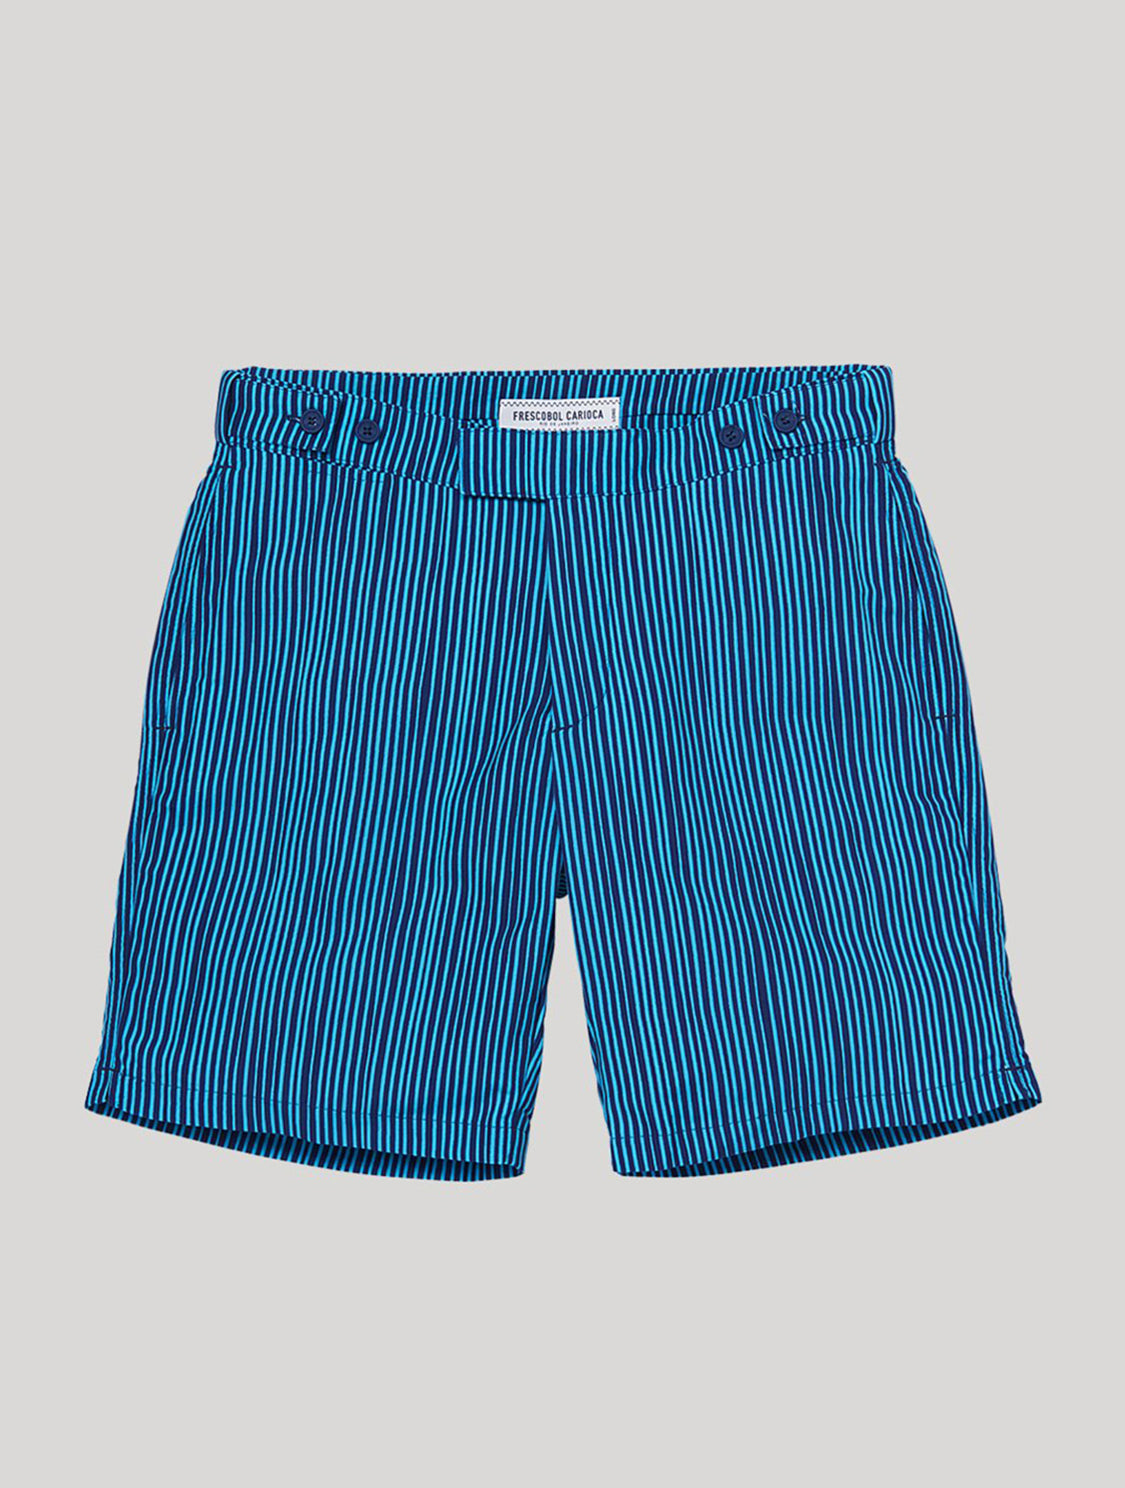 TAILORED SWIM SHORTS TRAÇOS PRINT